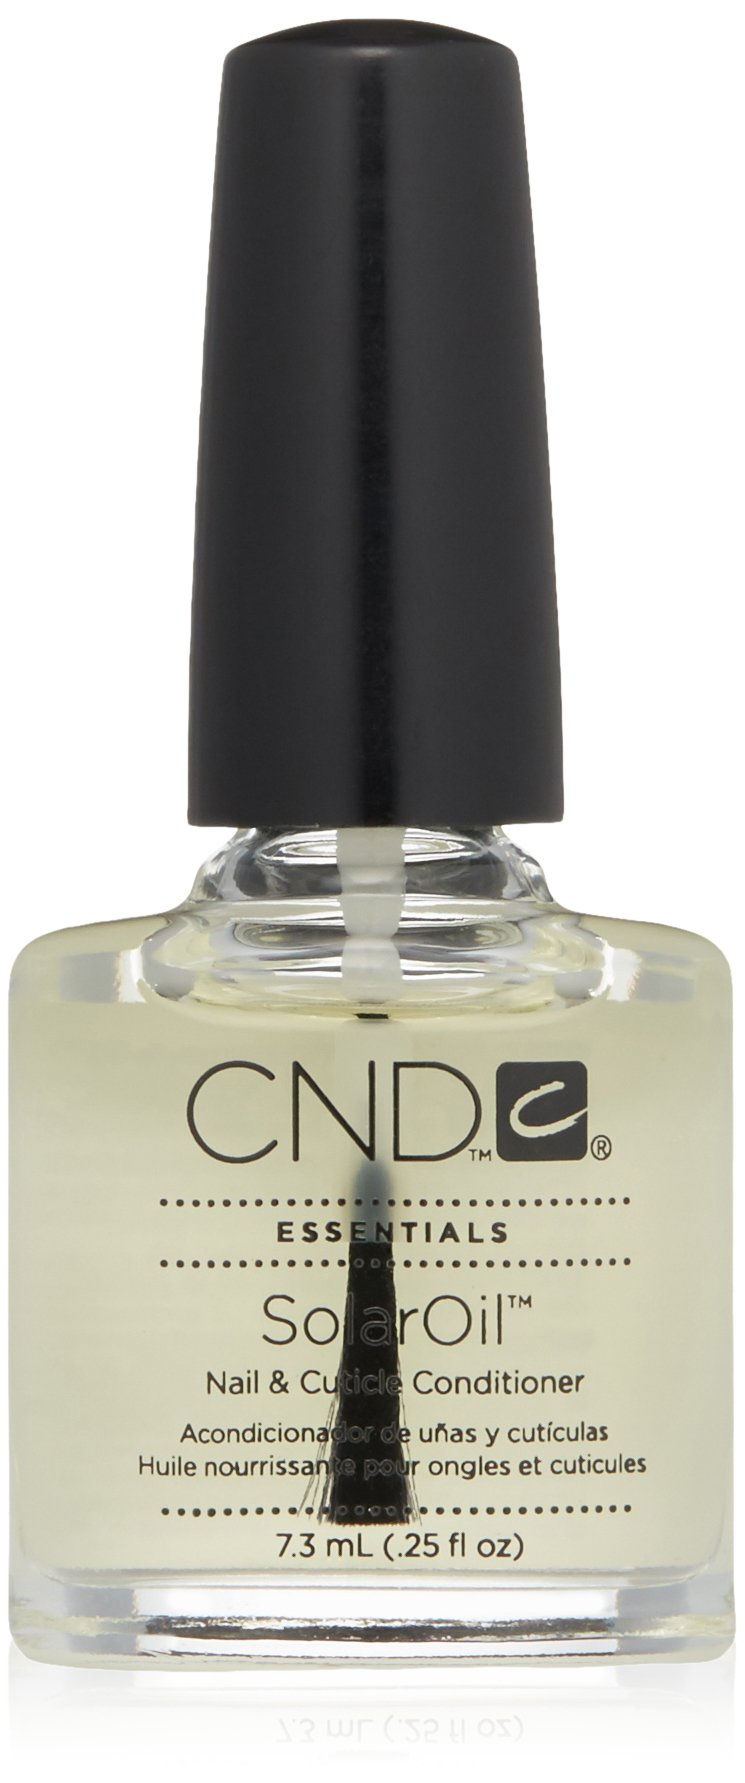 CND Essentials Nail & Cuticle Oil, Solaroil